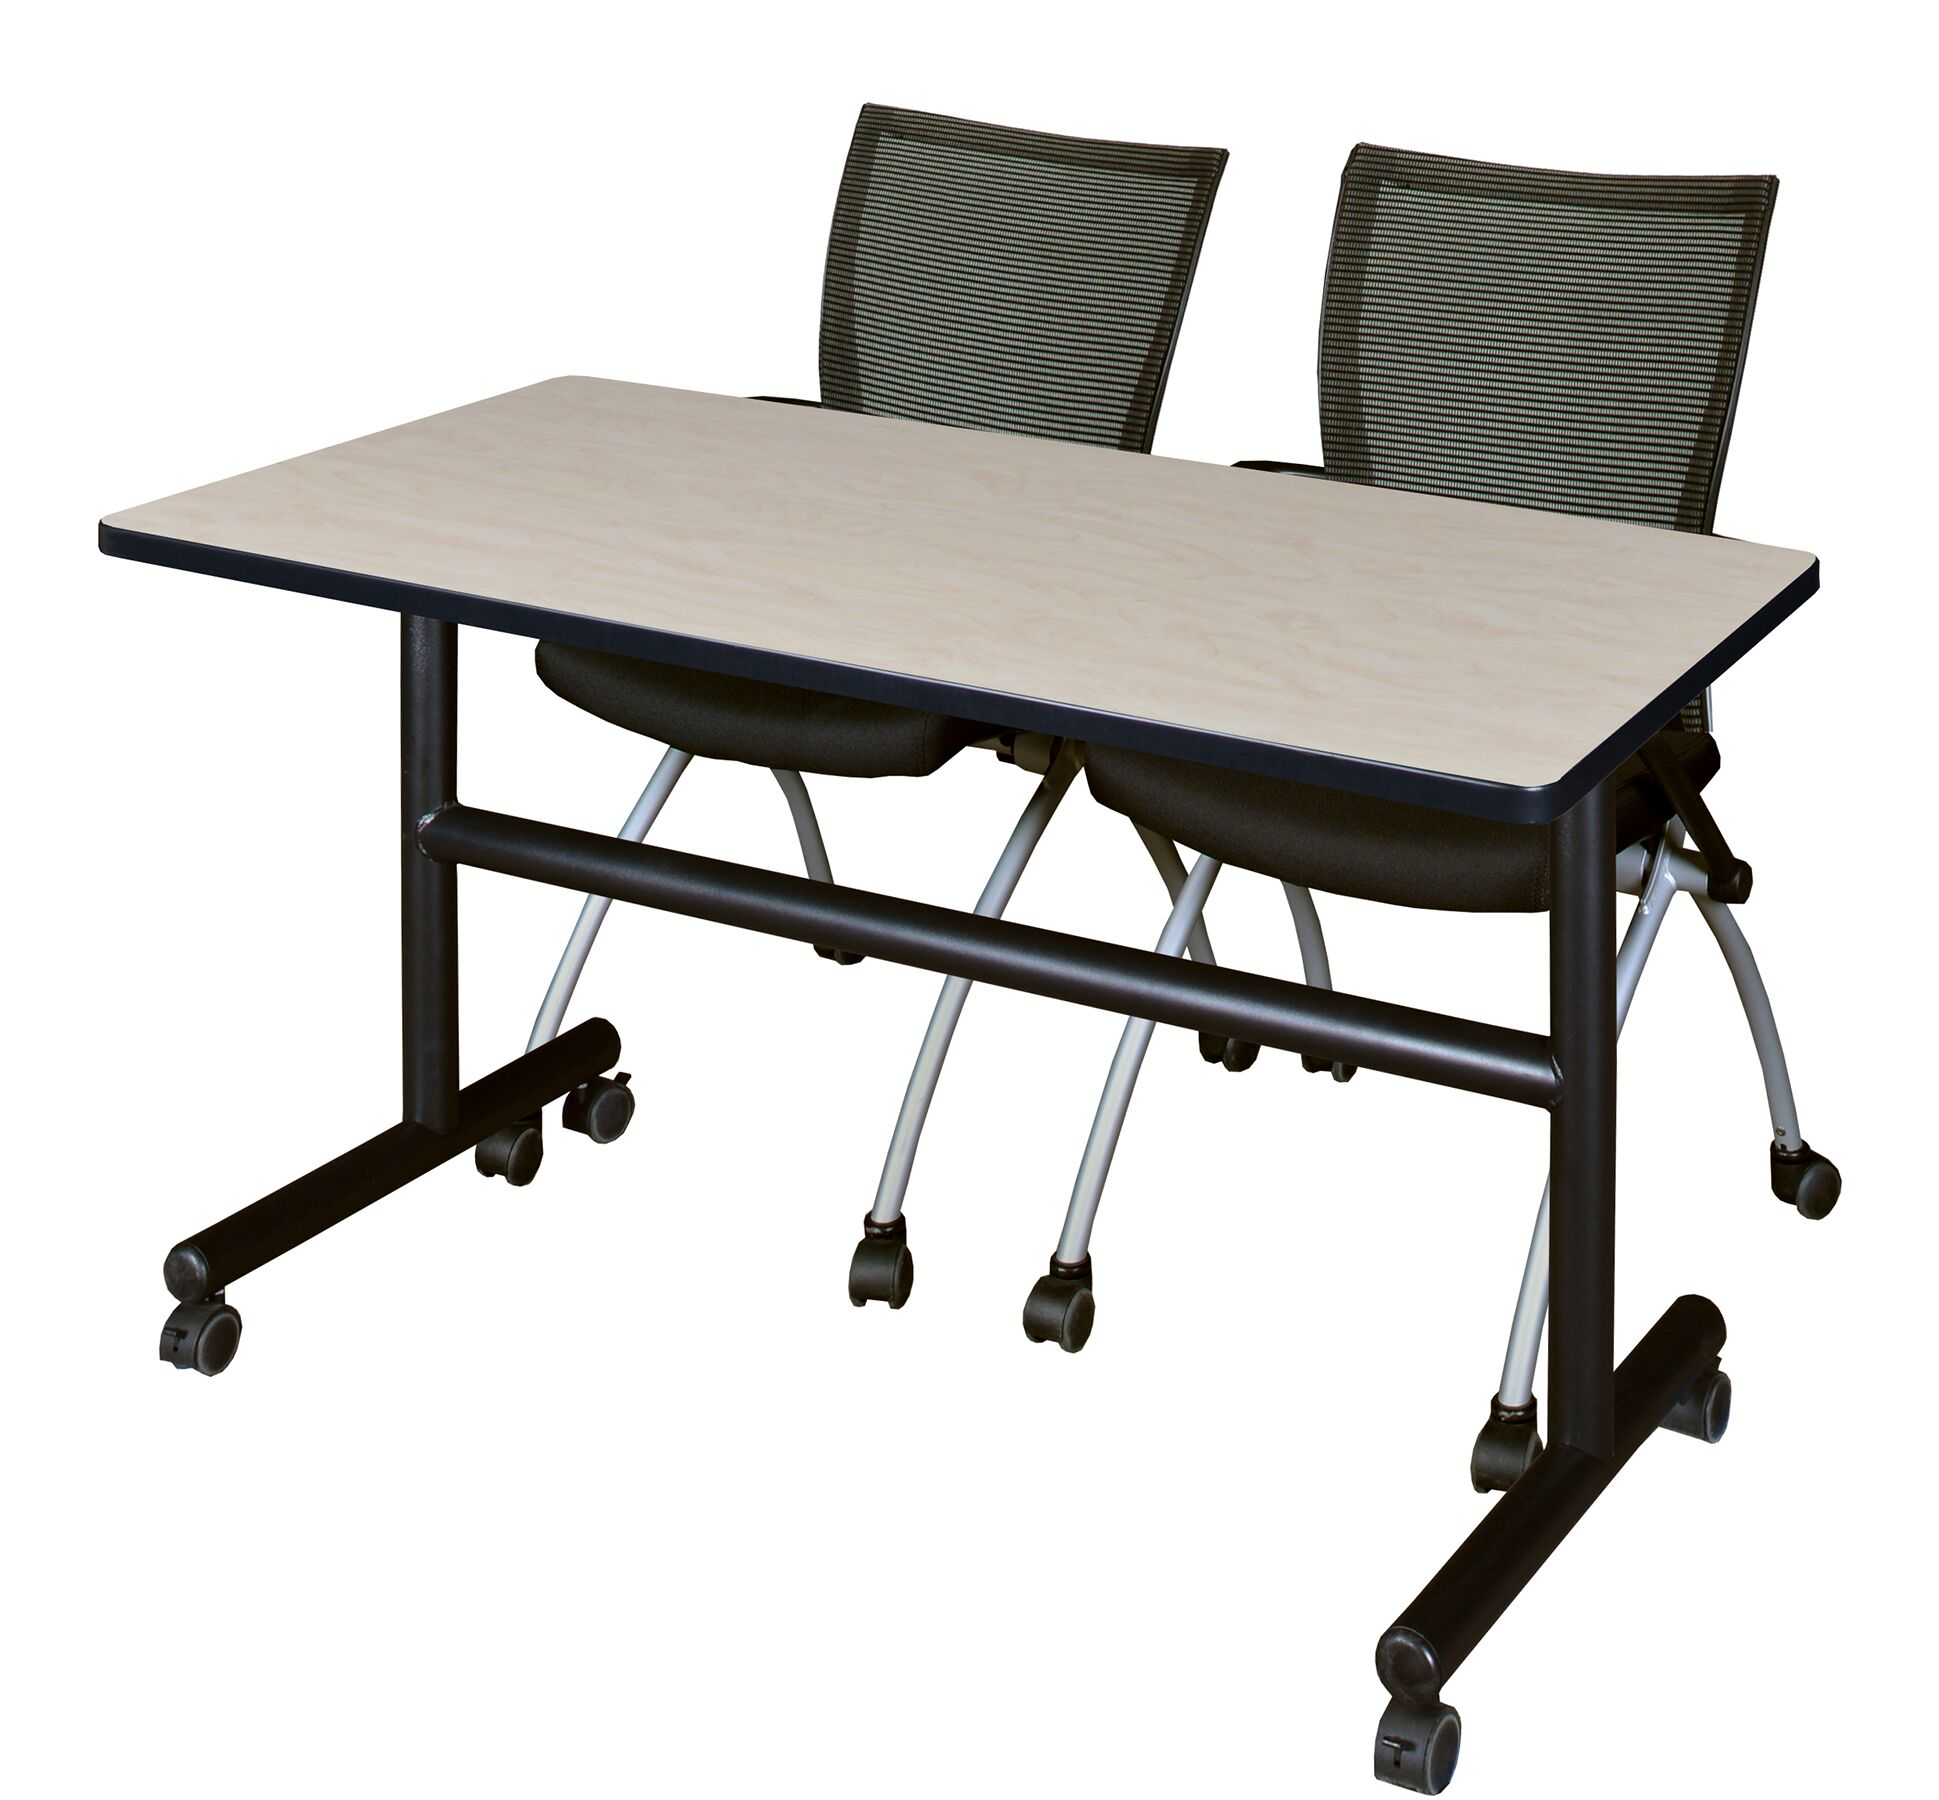 Vaughan Flip Top Mobile Training Table with Wheels Tabletop Finish: Beige, Size: 29